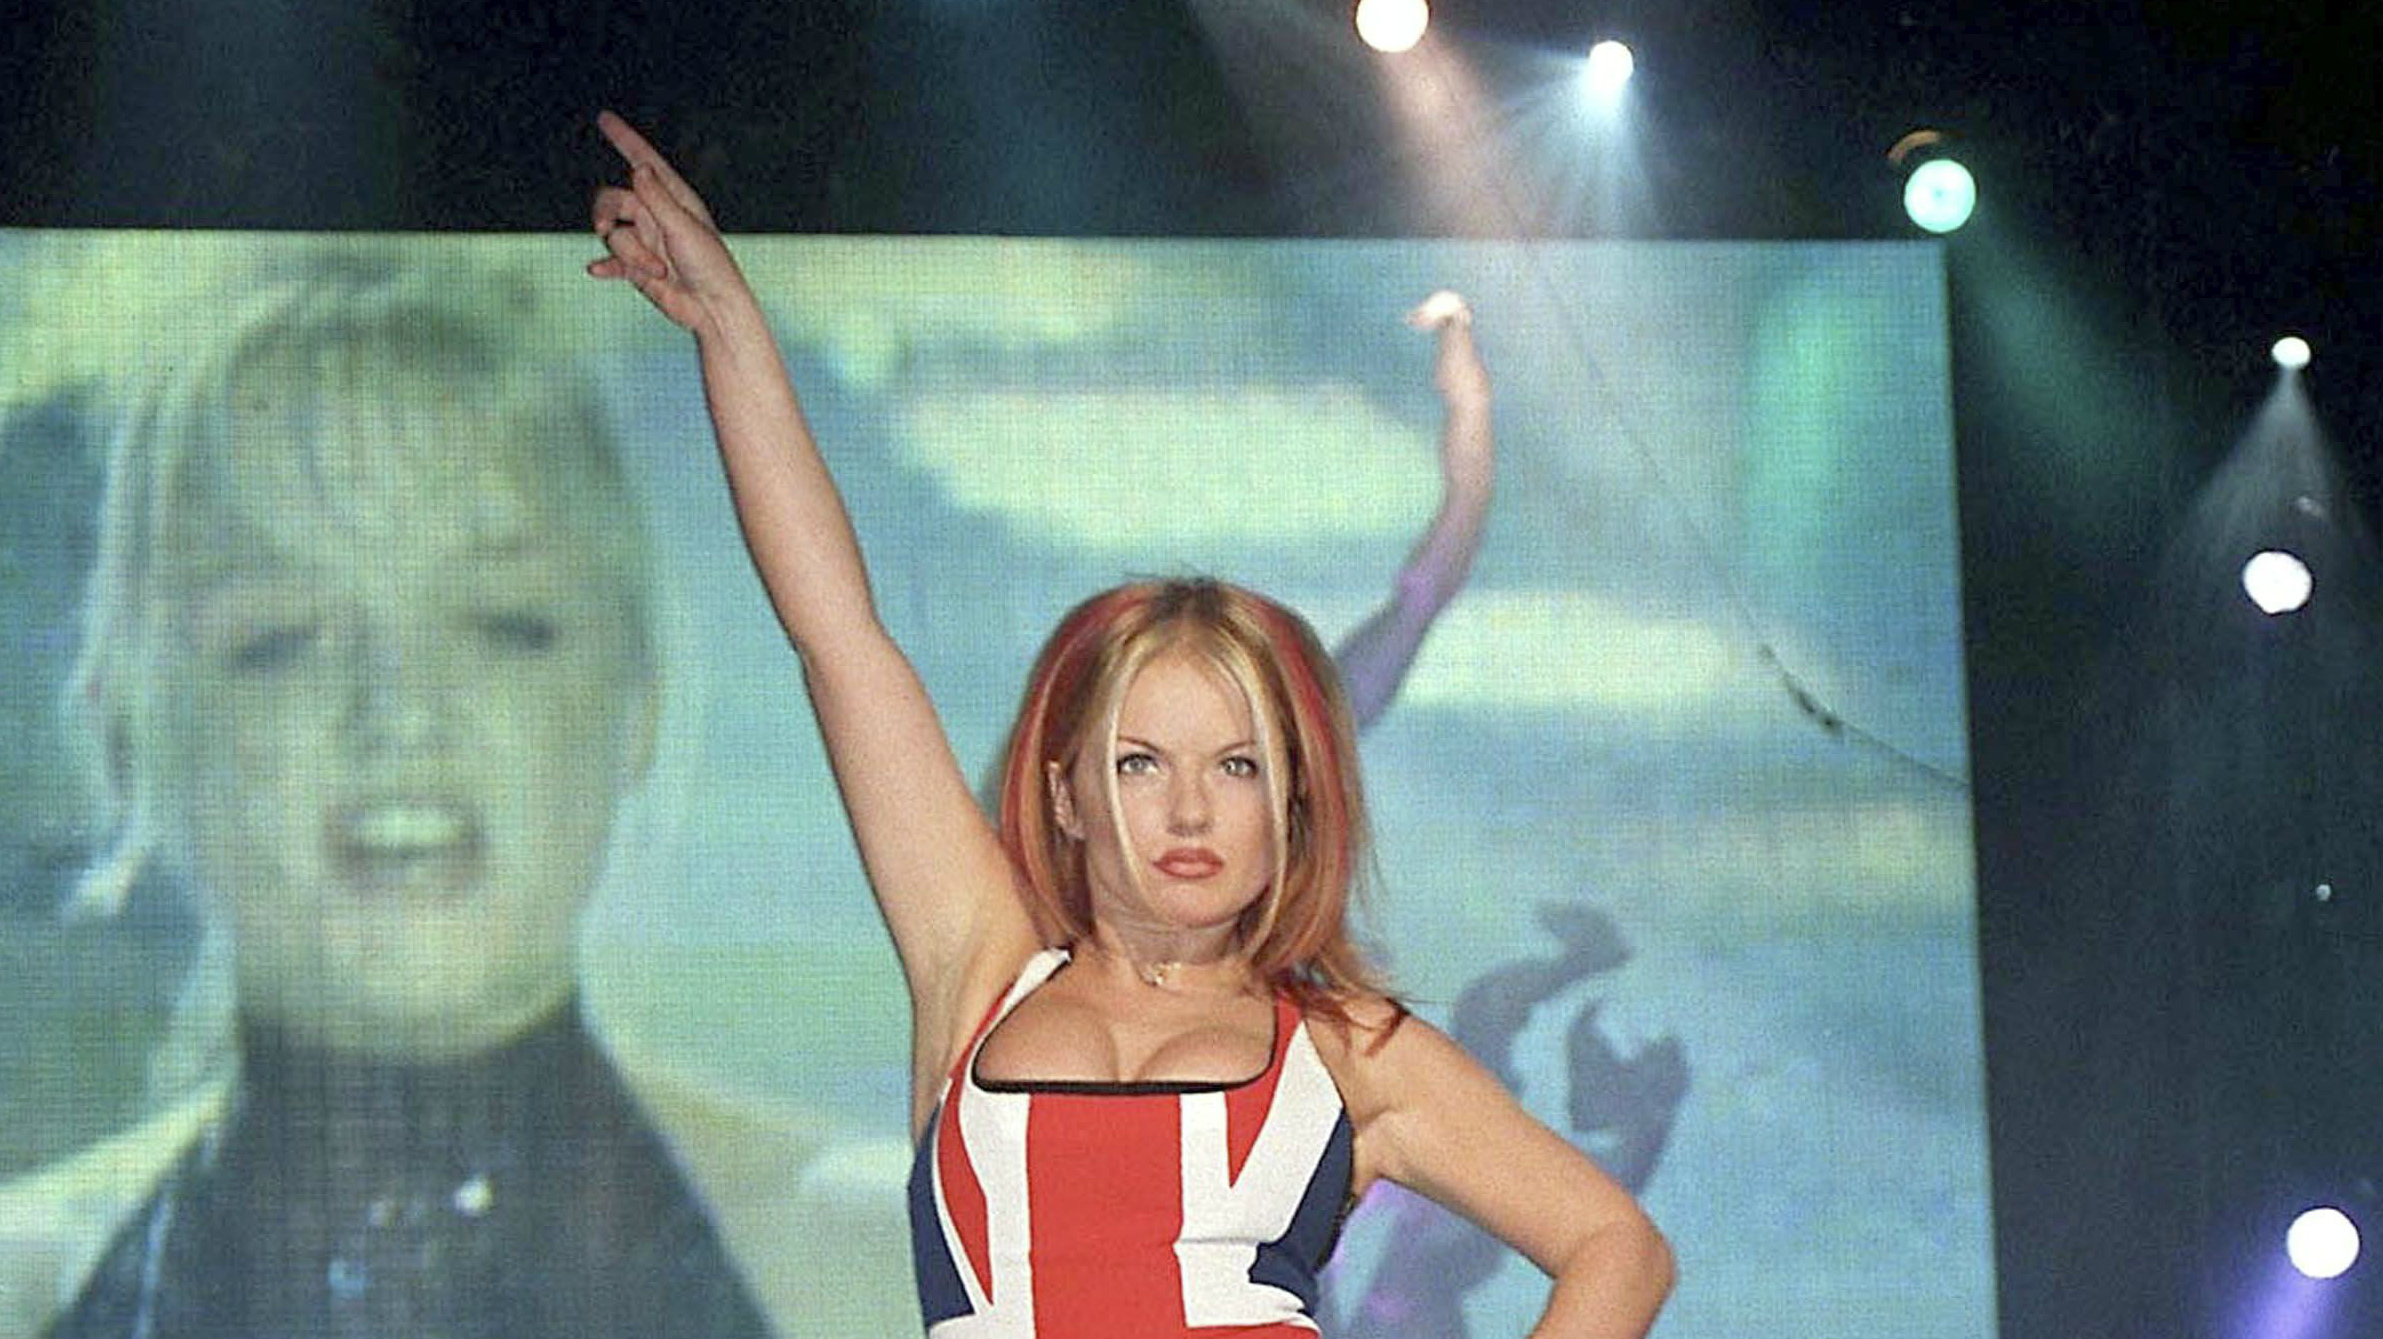 It's been 20 years since Geri Halliwell wore that Union Jack dress to the Brits